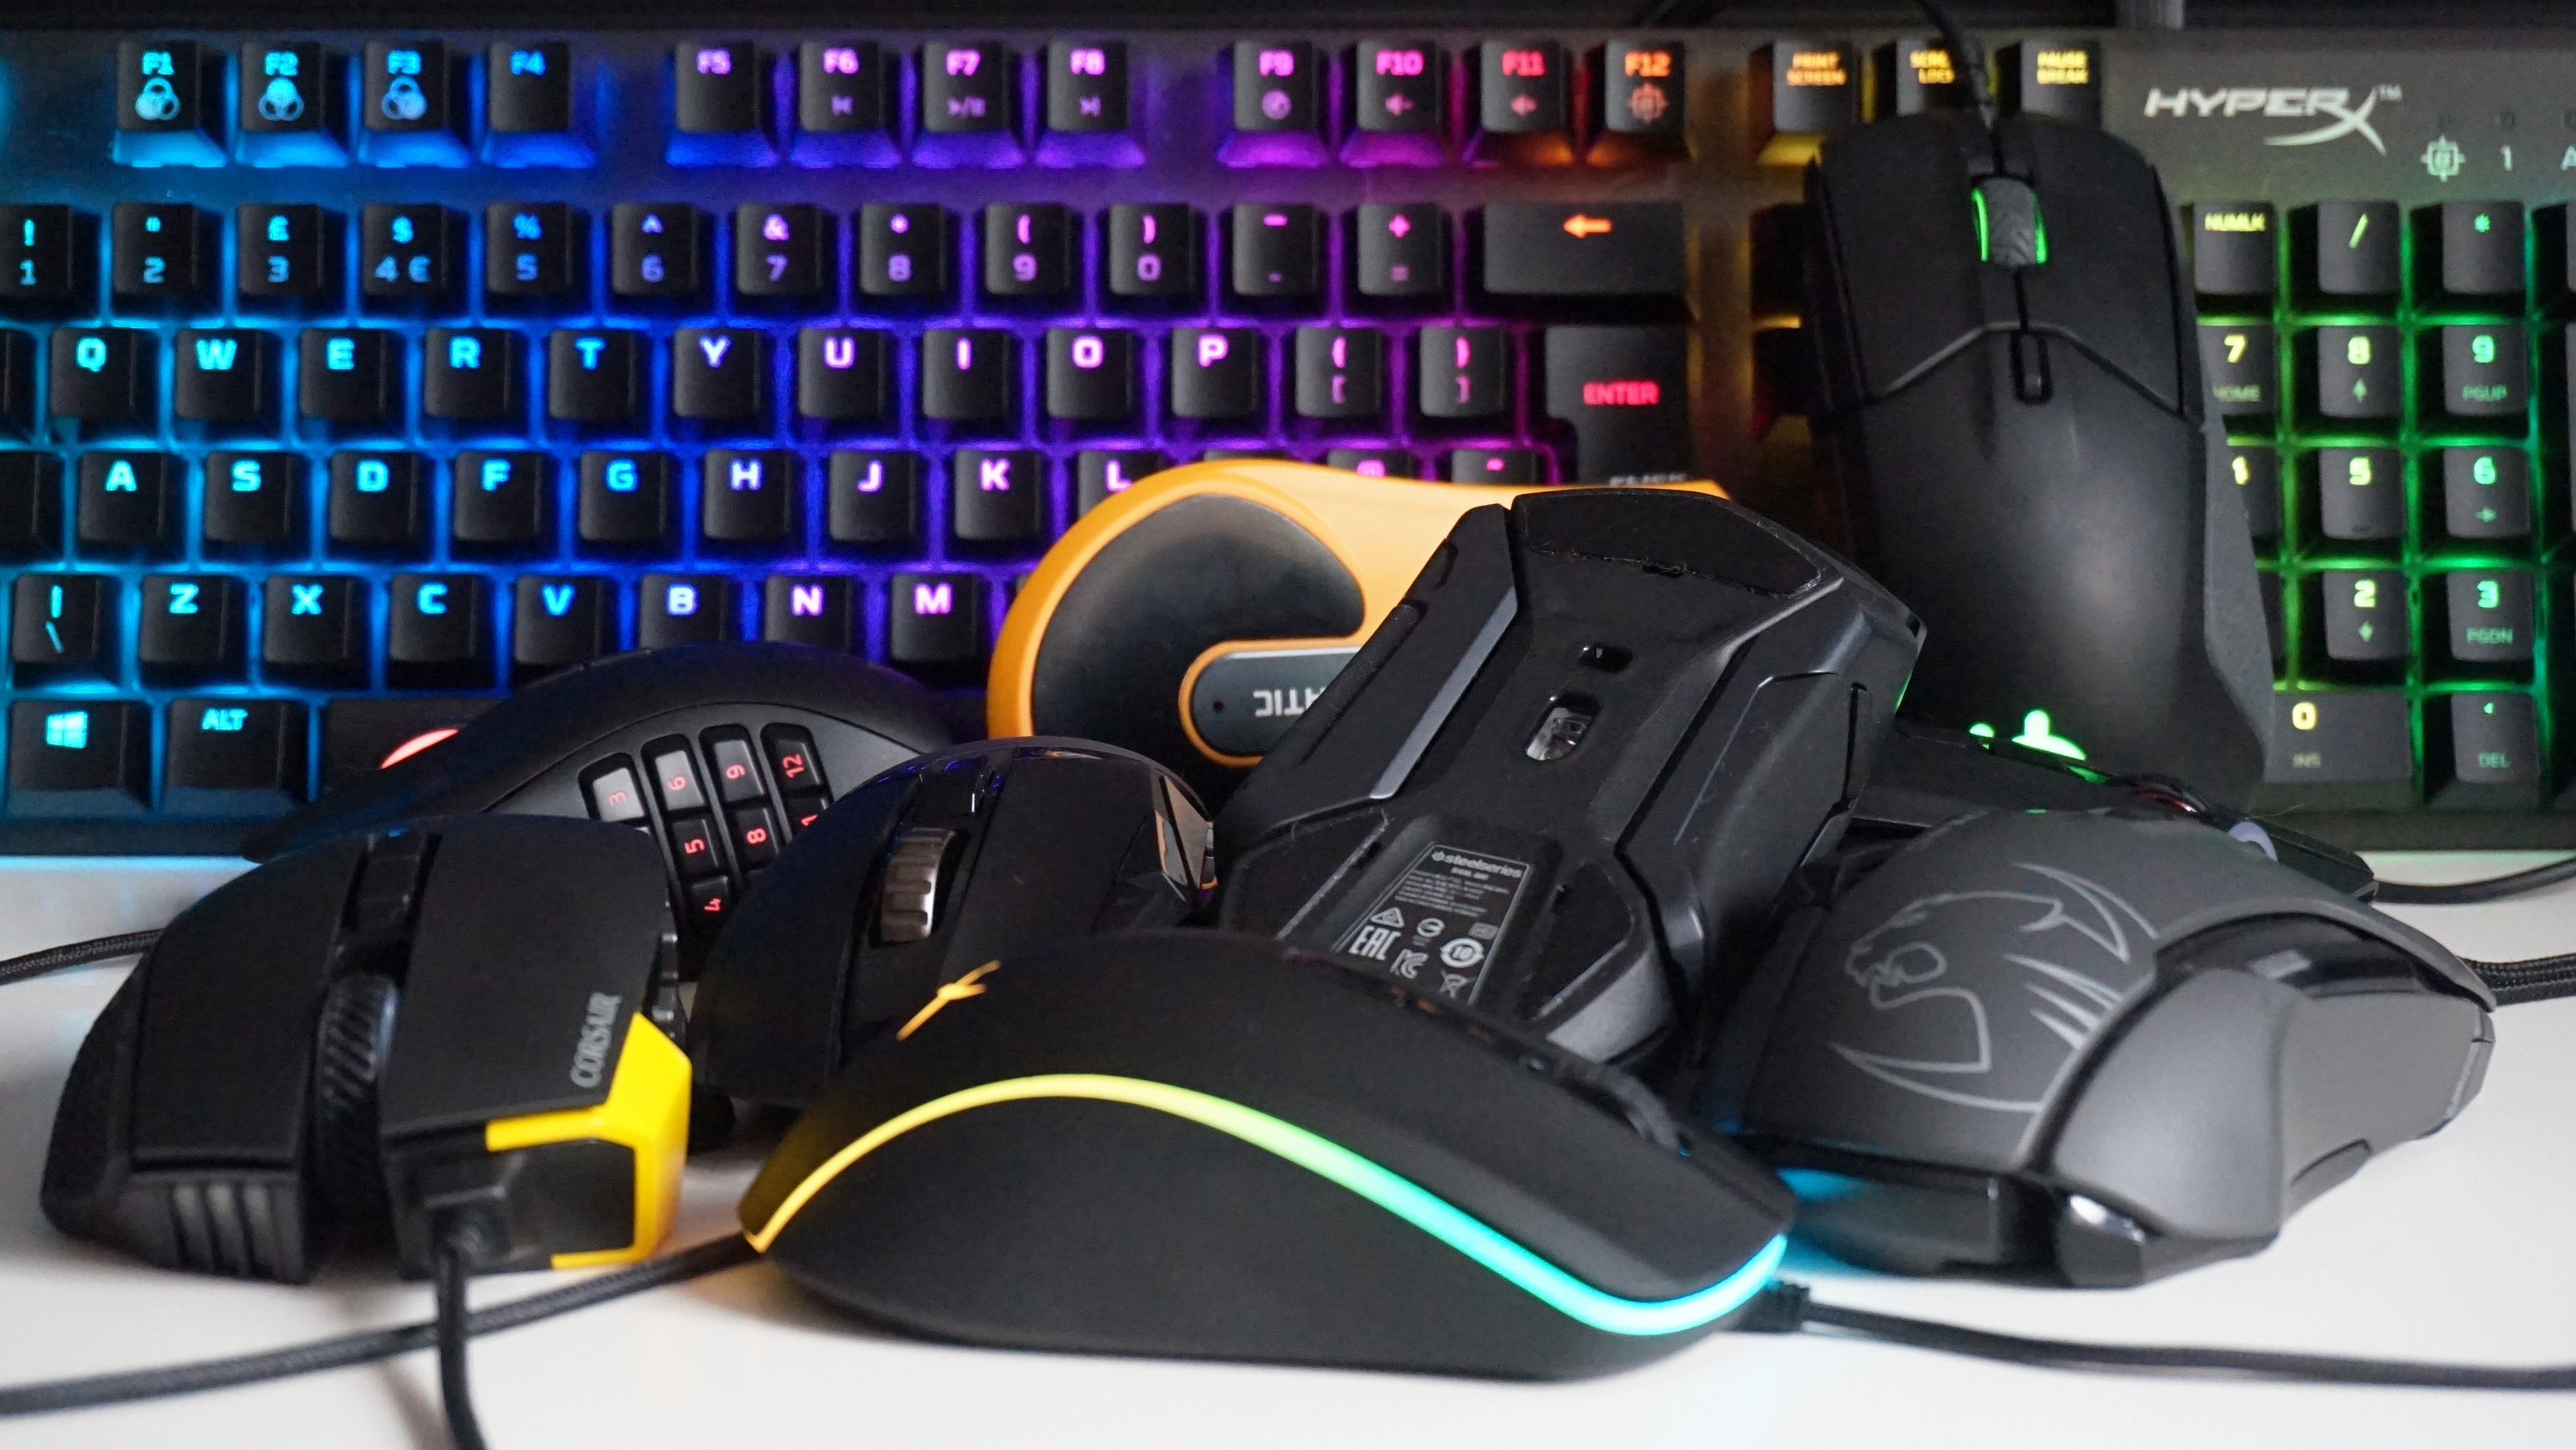 f0bbce4742f Best gaming mouse 2019: Top wired and wireless gaming mice | Rock ...